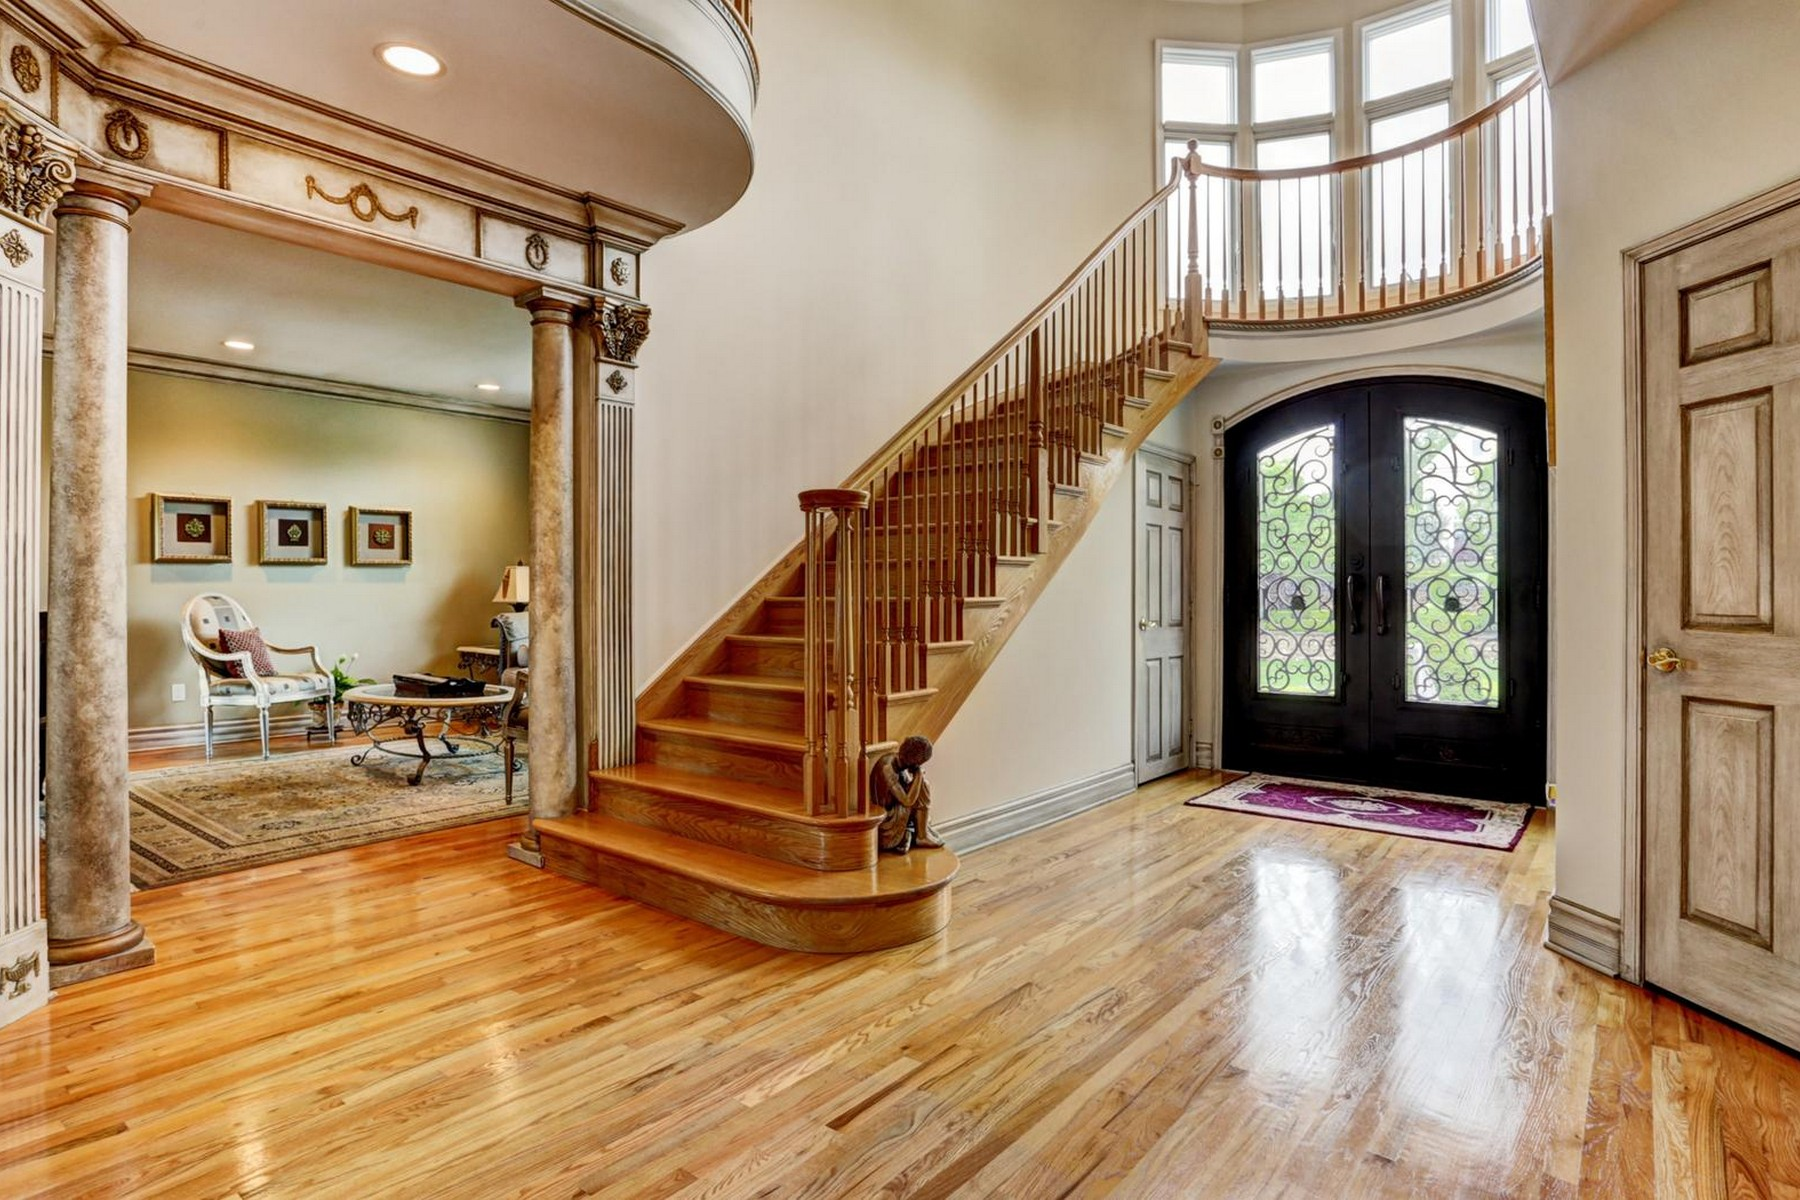 Additional photo for property listing at Masterful Design 308 Bayview Dr Morganville, New Jersey 07751 United States